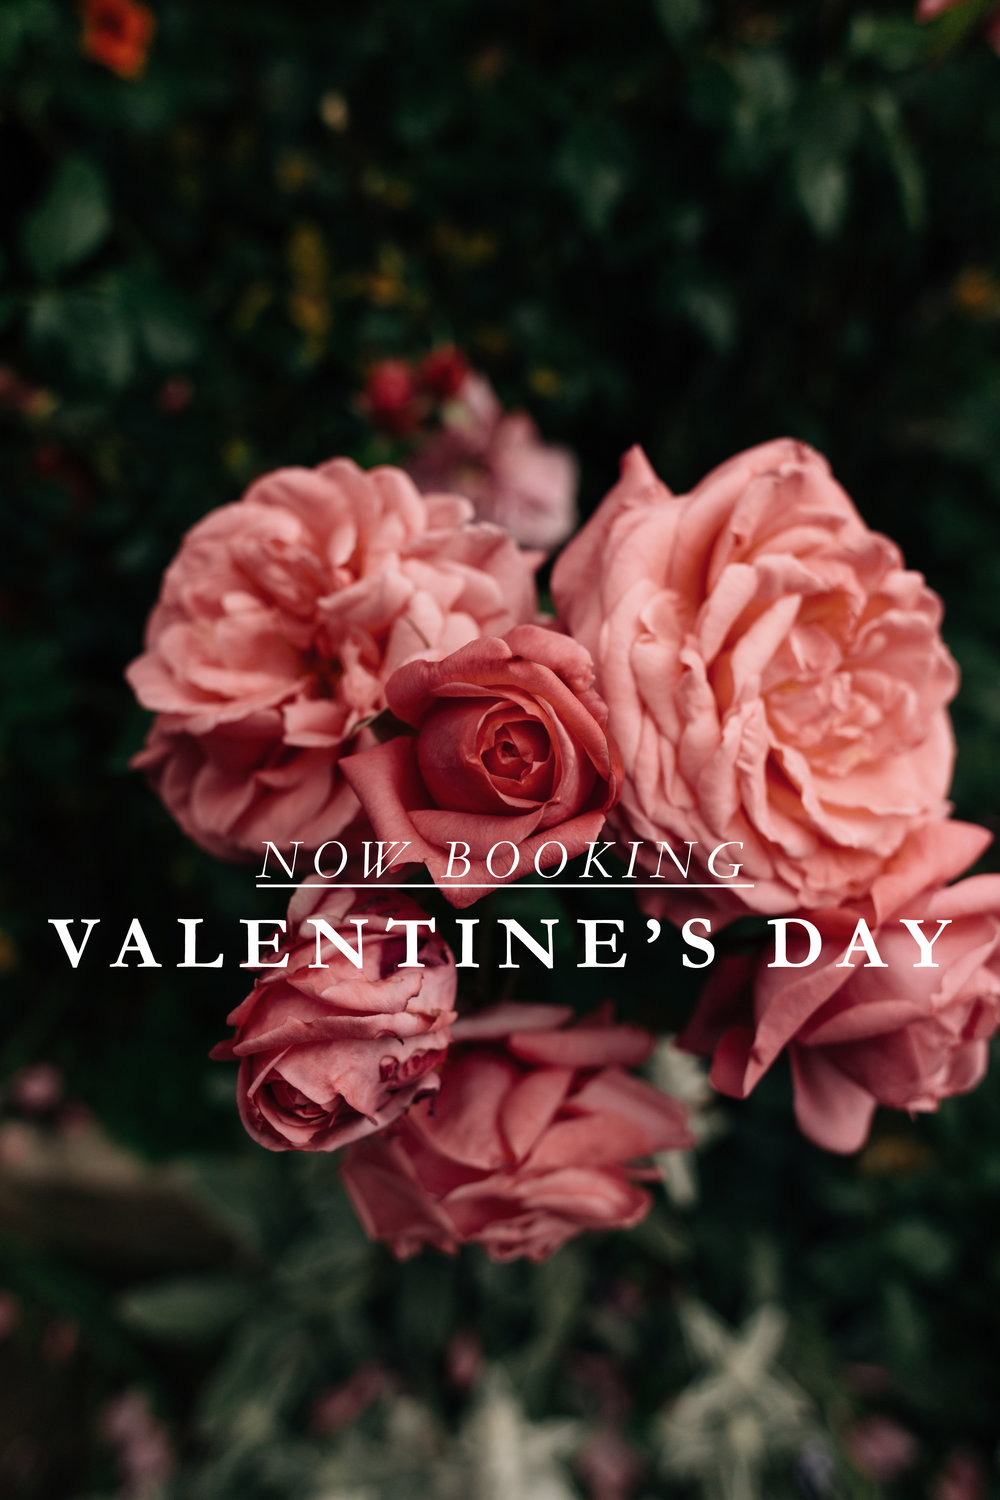 2019 VALENTINE'S DAY RESERVATIONS AT KITCHEN SIX